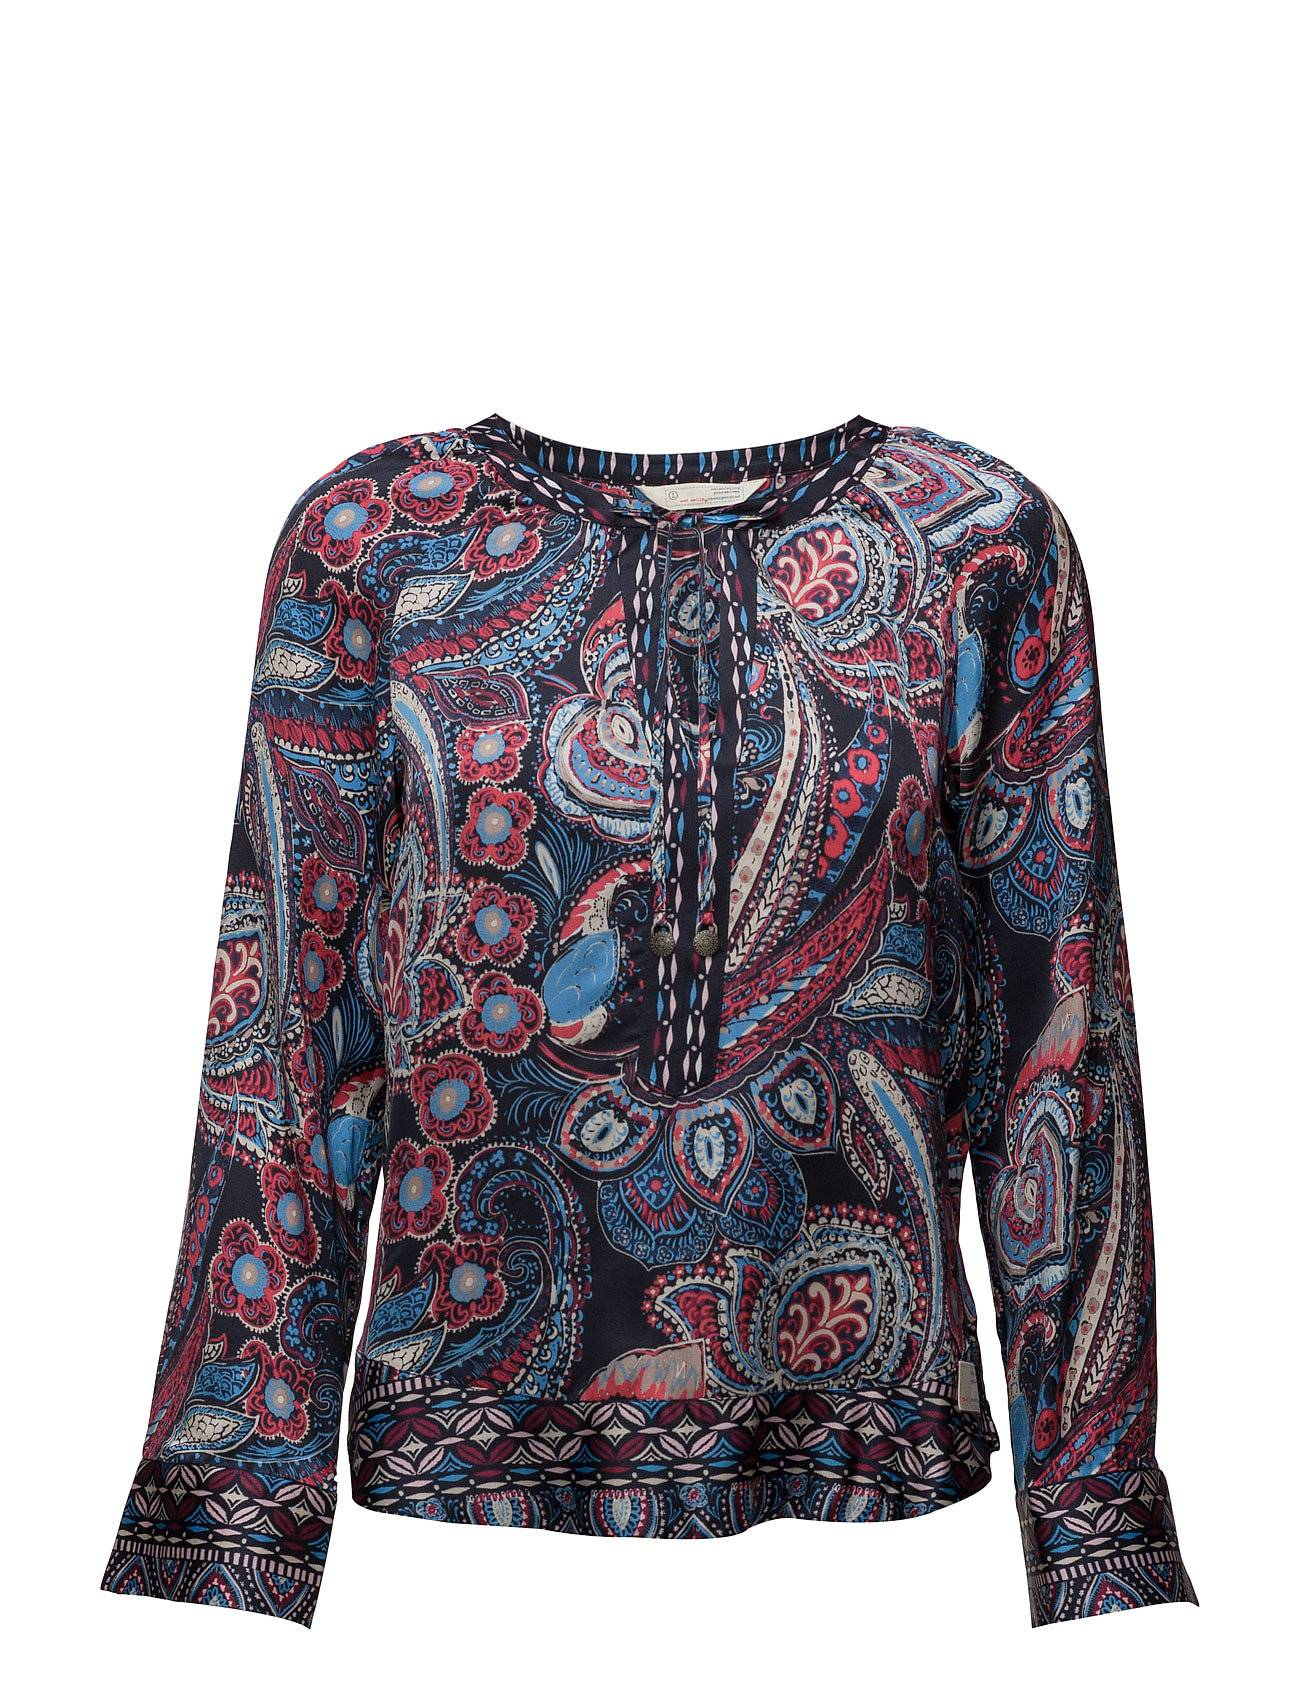 ODD MOLLY Esemble L/S Blouse